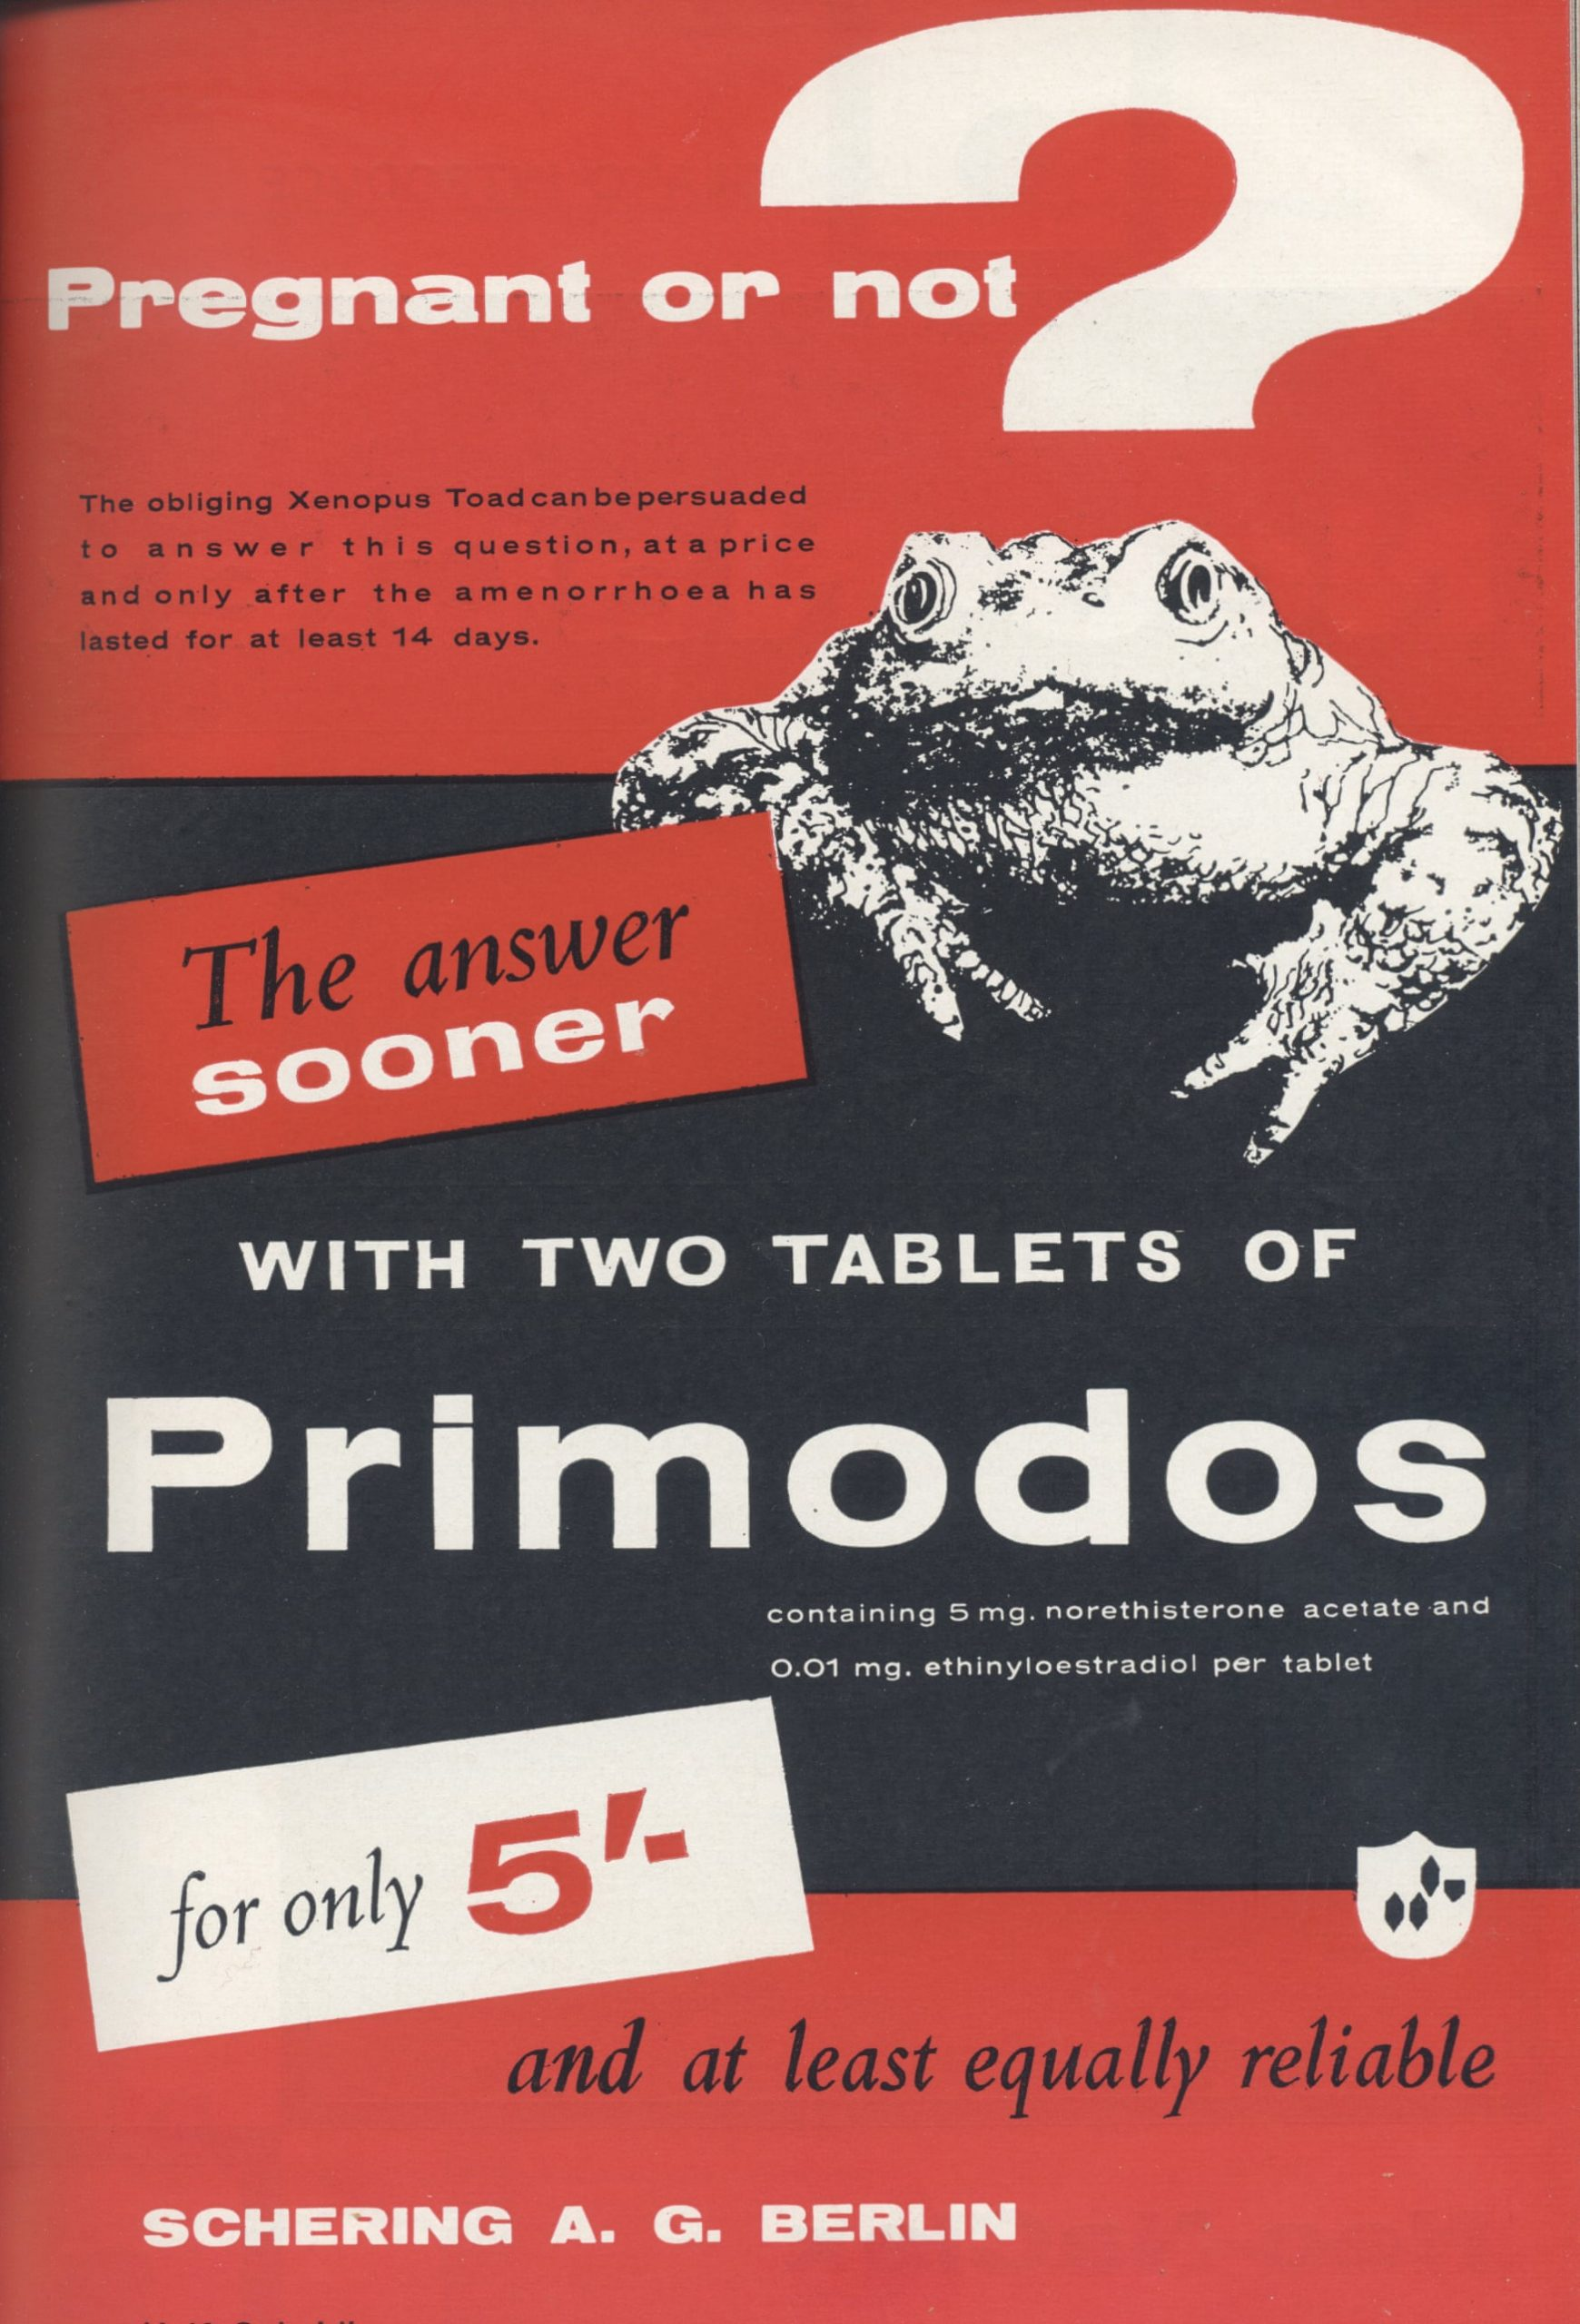 A historical argument for regulatory failure in the case of Primodos and other hormone pregnancy tests